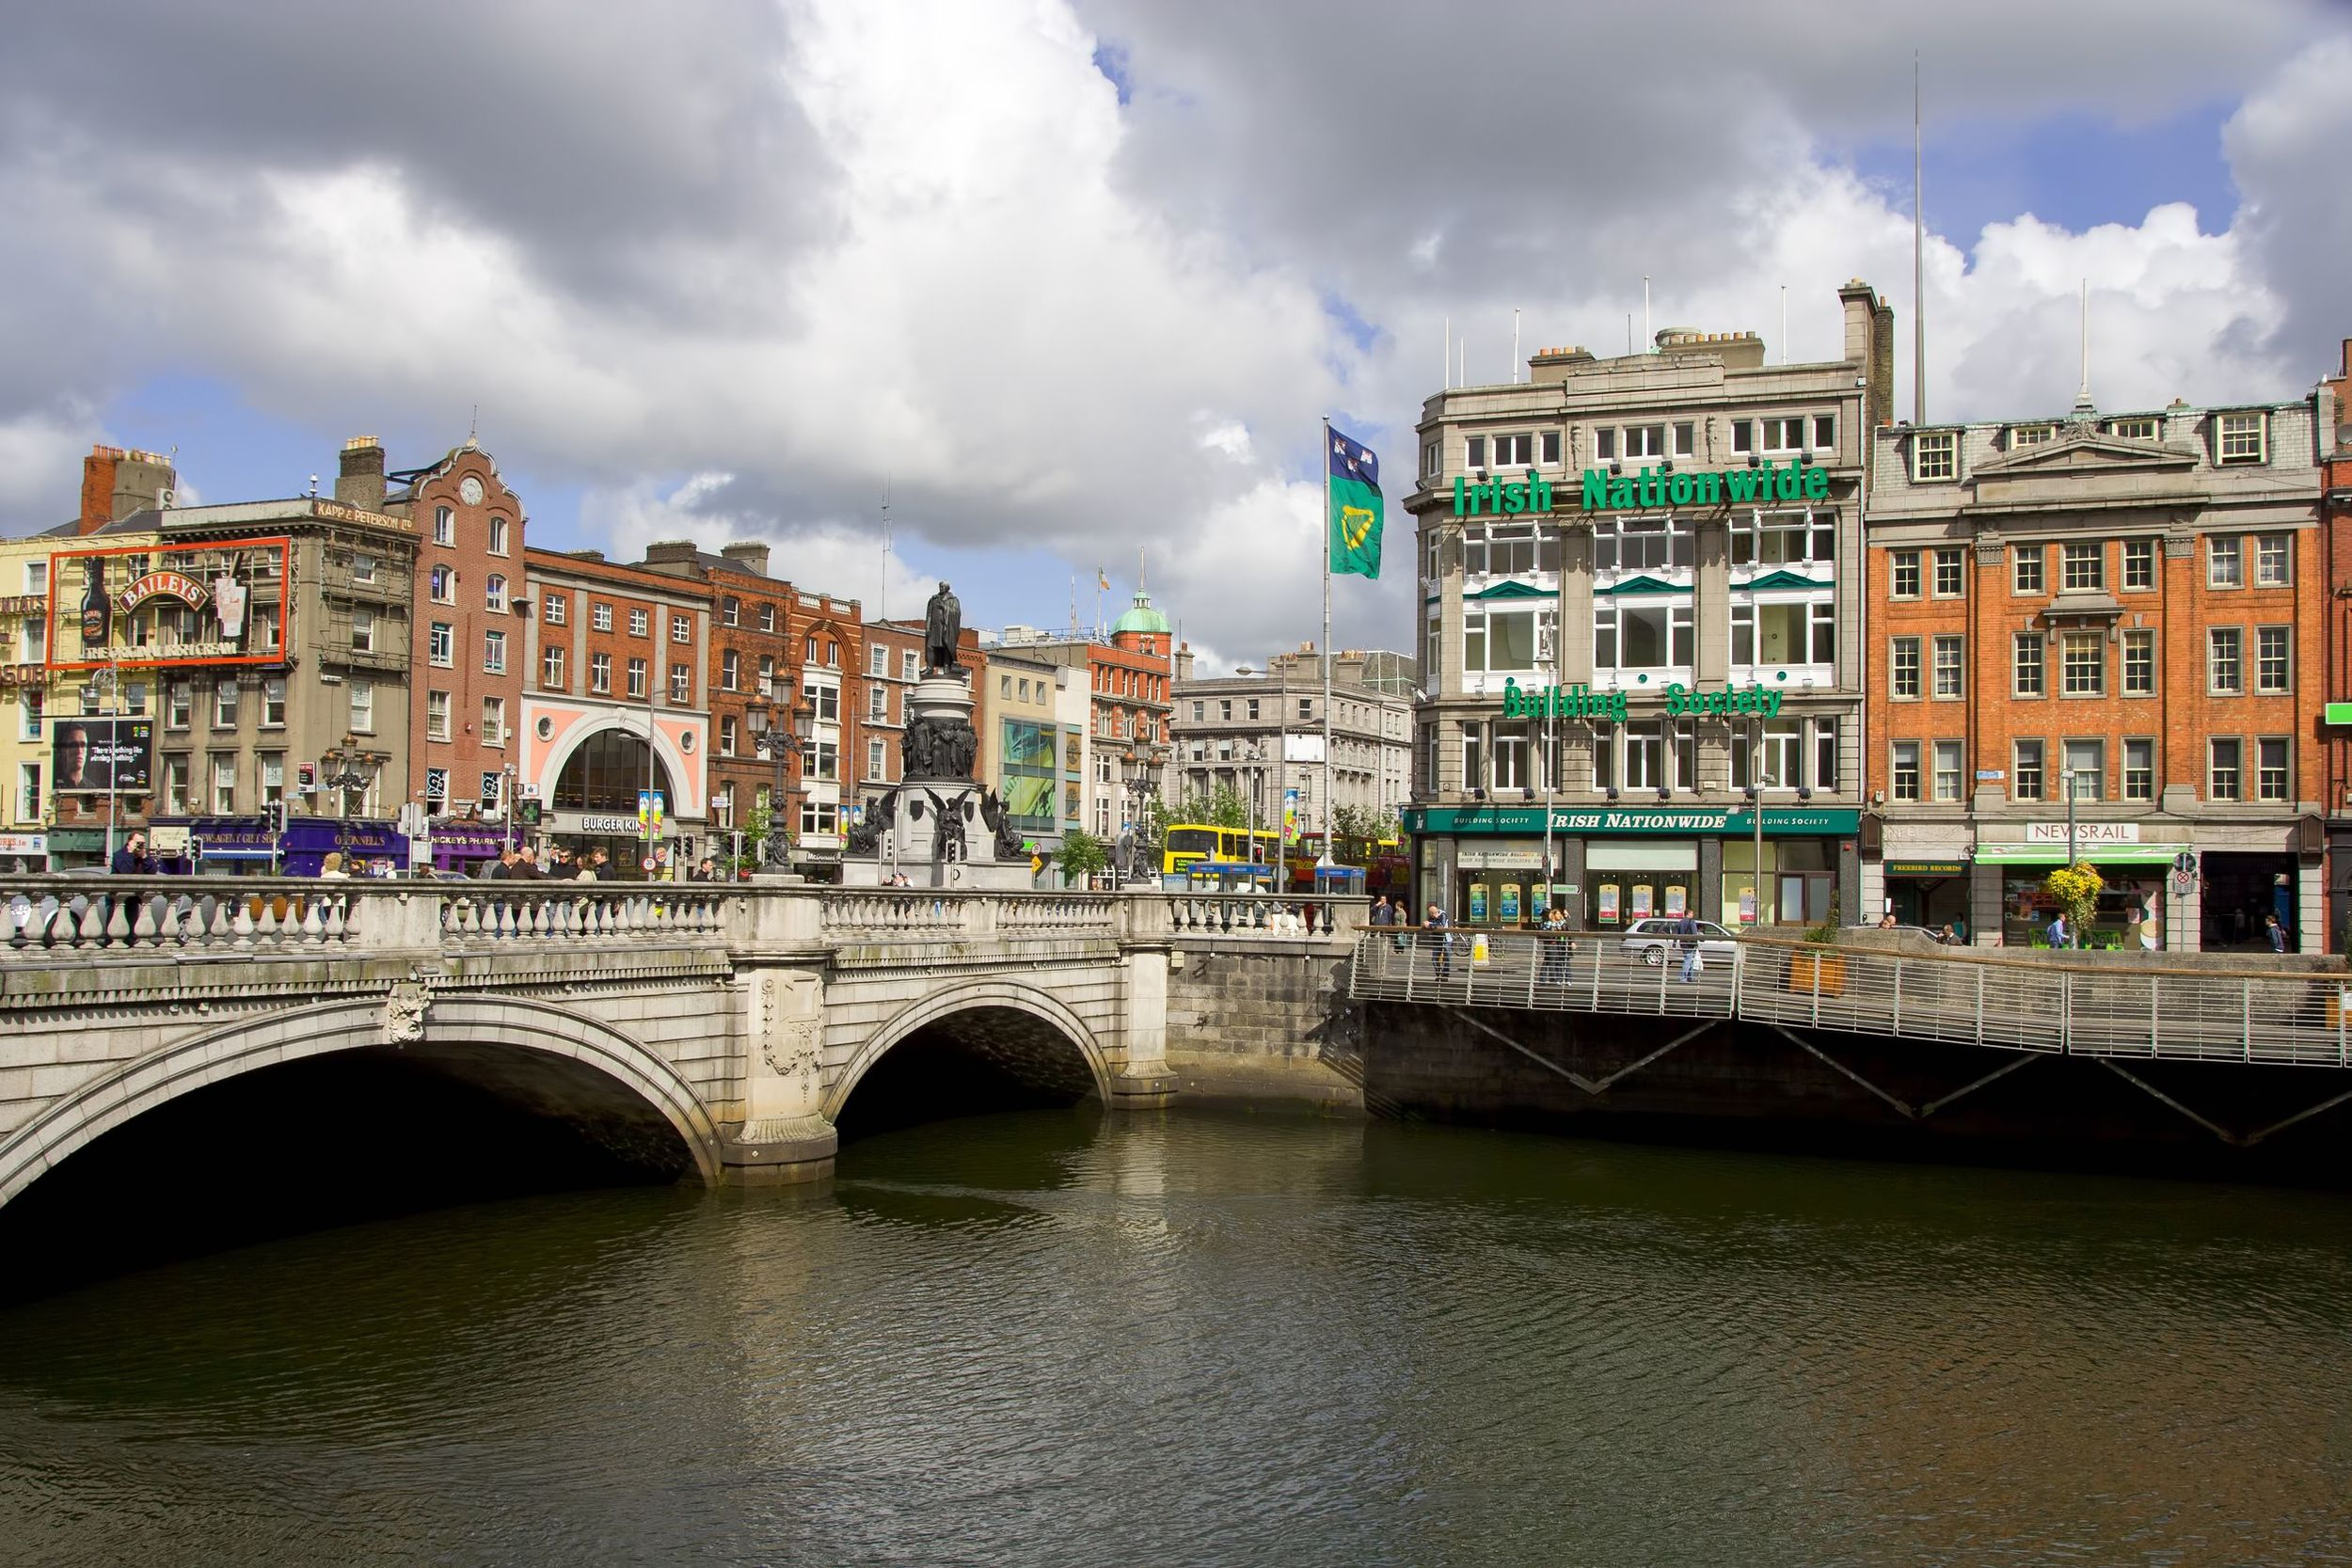 Dublin-city-center-OConnel-bridge-and-Liffey-River-in-Dublin-Ireland.jpg